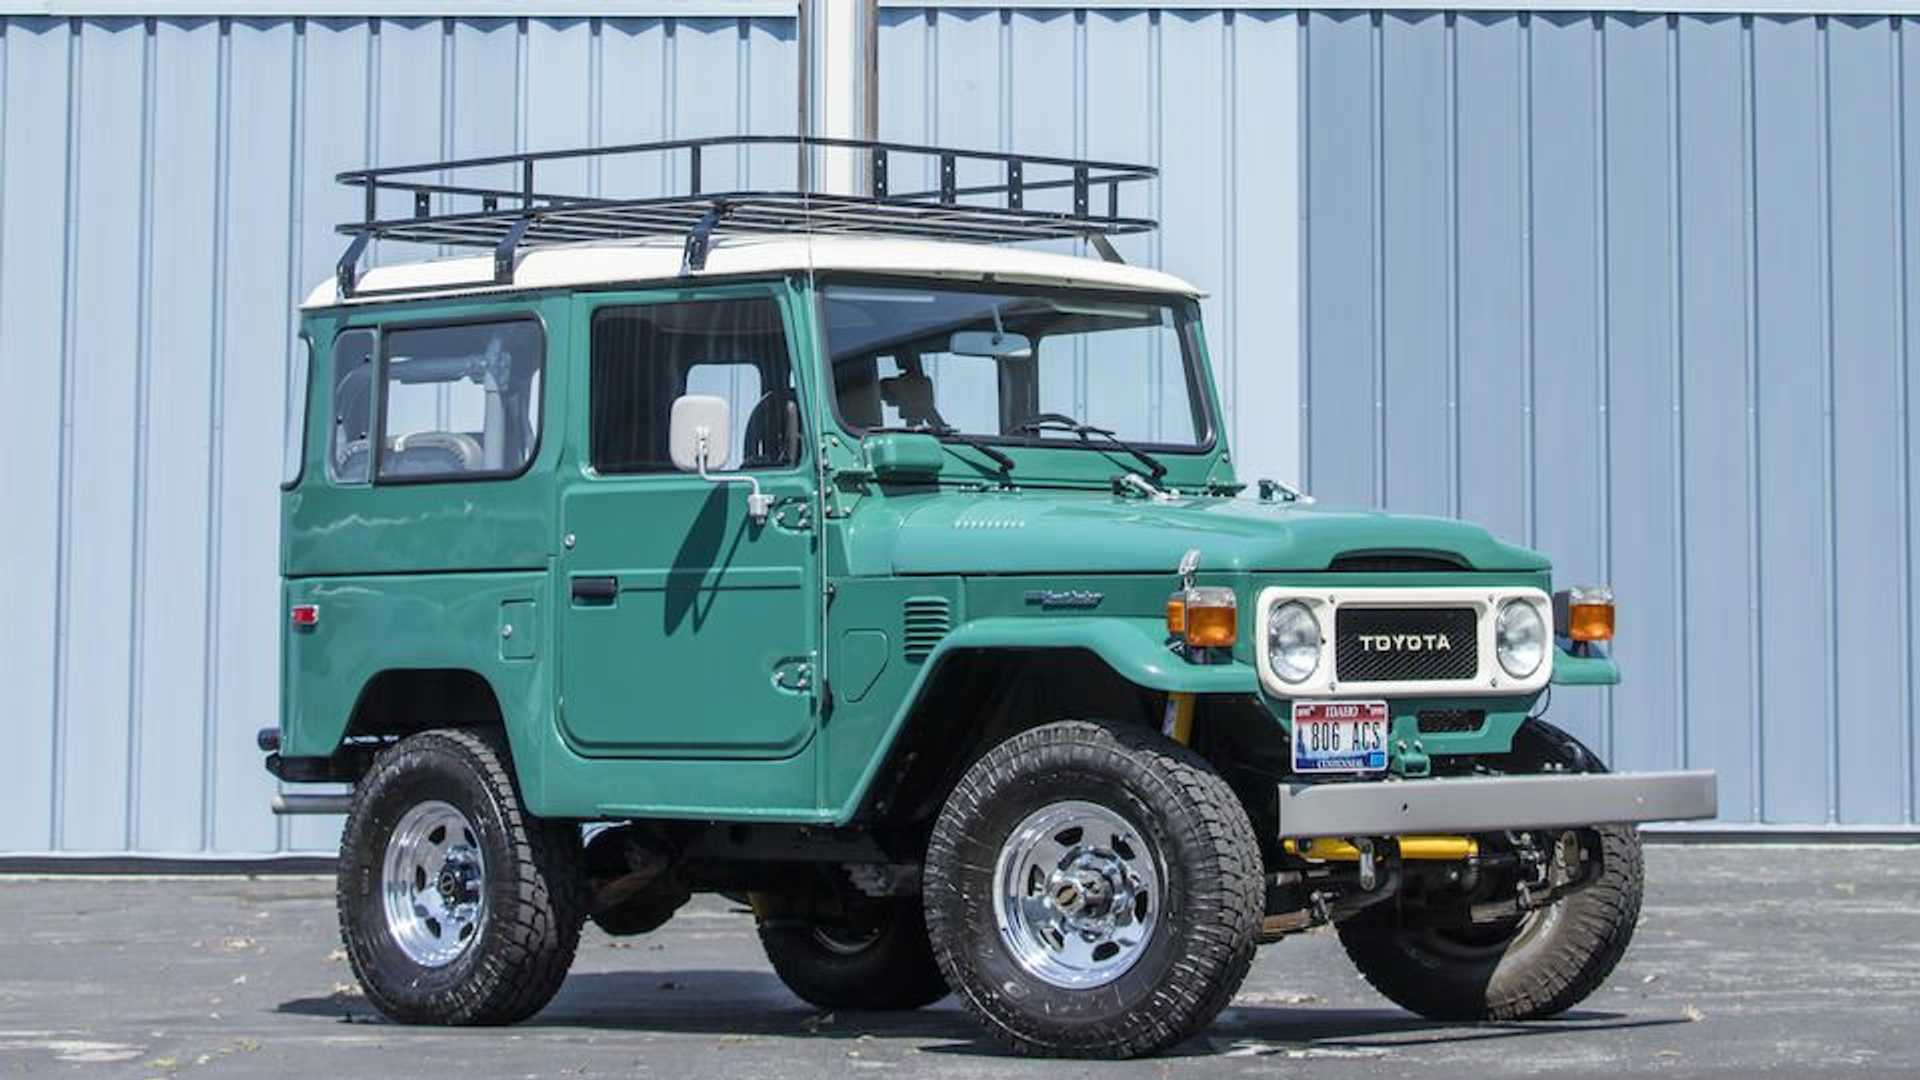 https://cdn.motor1.com/images/mgl/6nzyZ/s6/tom-hanks-s-incredible-toyota-land-cruiser-is-up-for-auction.jpg